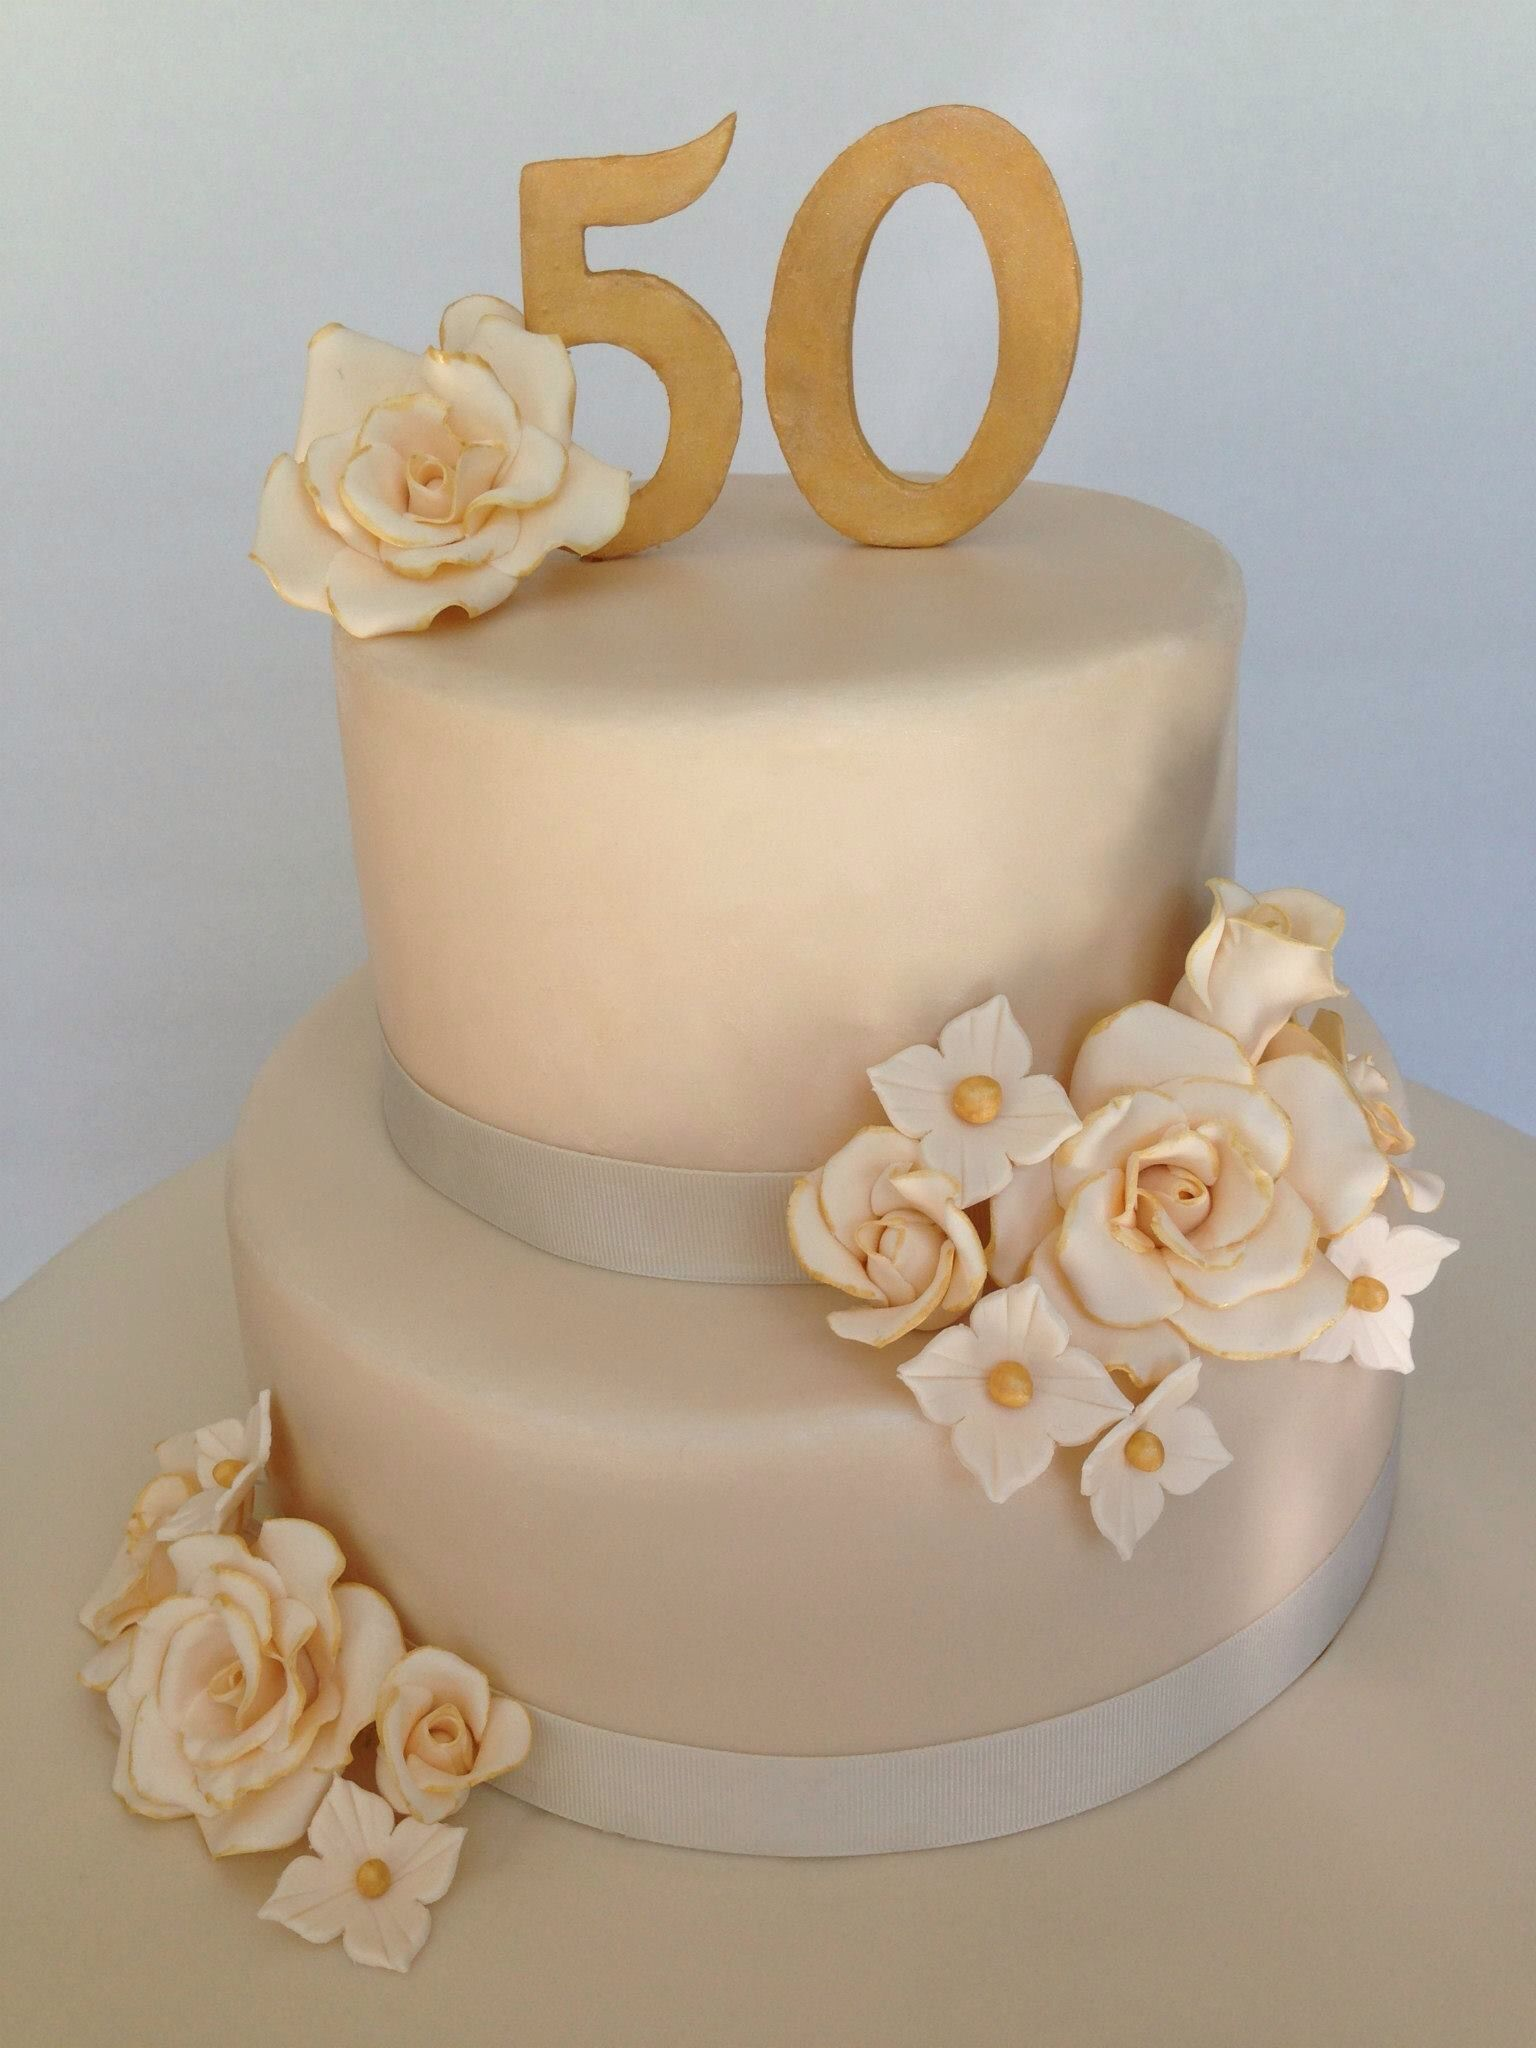 th wedding anniversary cake simple yet elegant